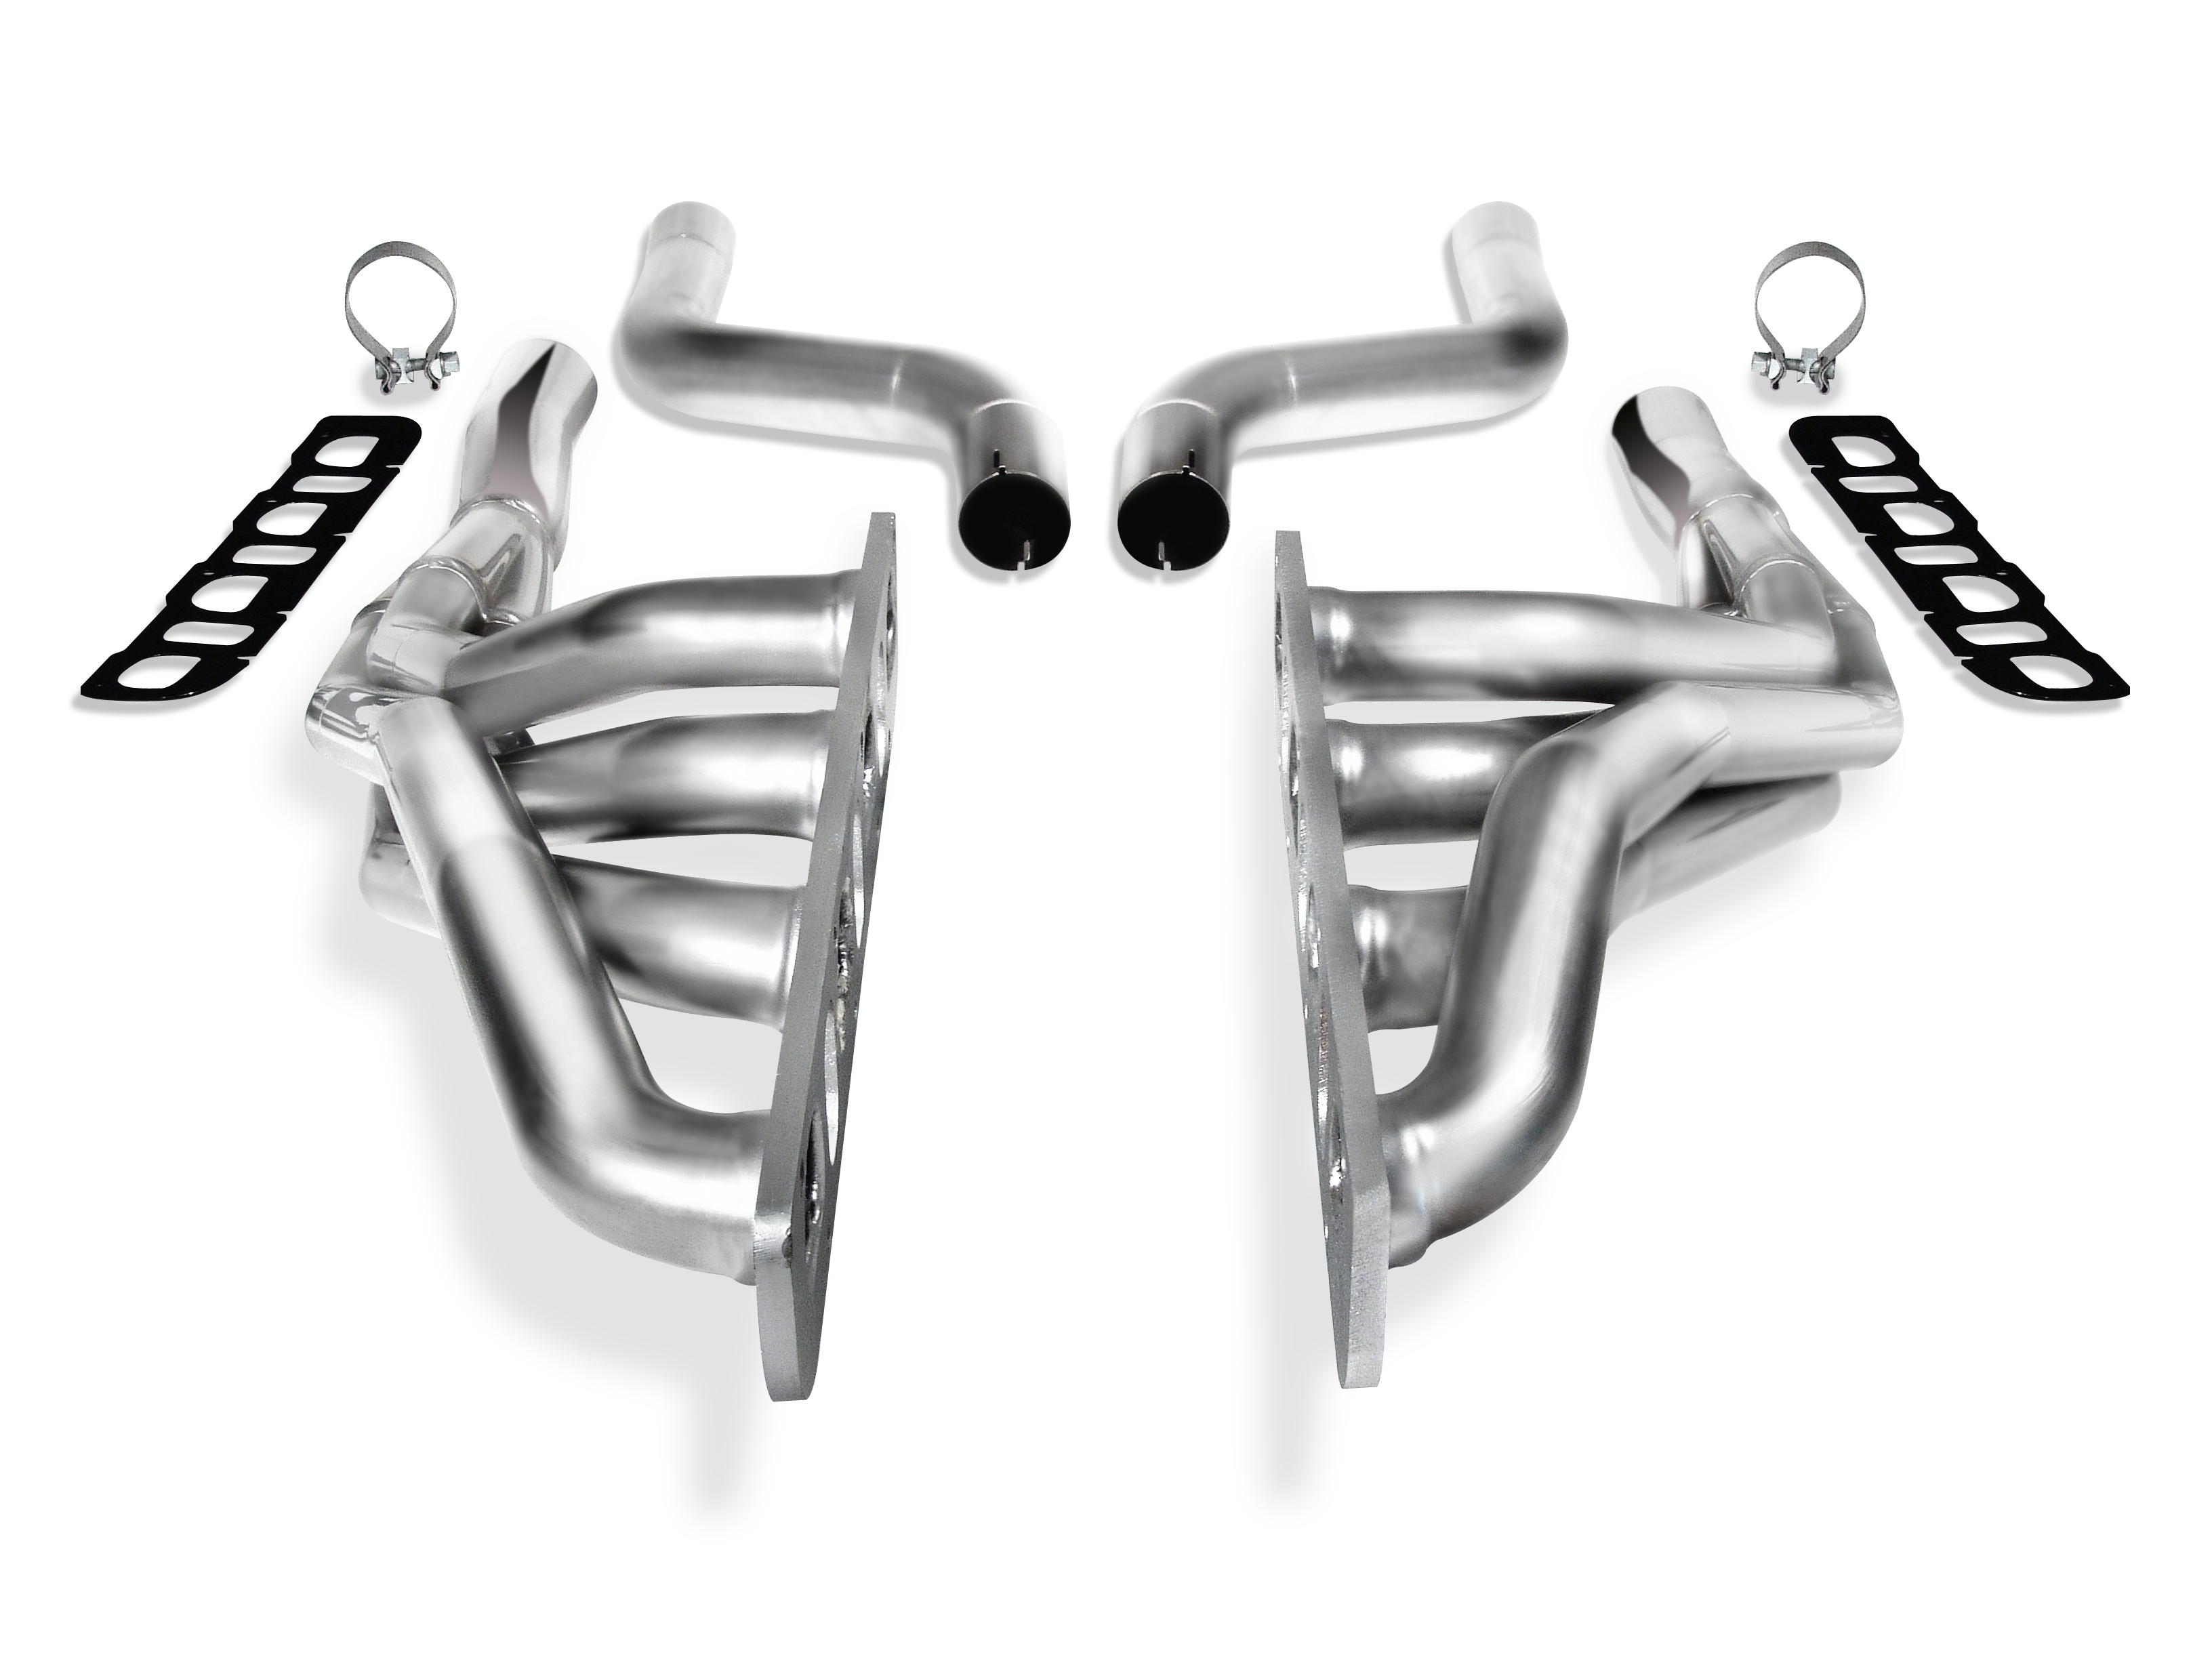 Dodge Challenger SRT-8 6.1l/6.4l V8 2009-2011 Borla Long Tube Exhaust Headers (offroad Only)